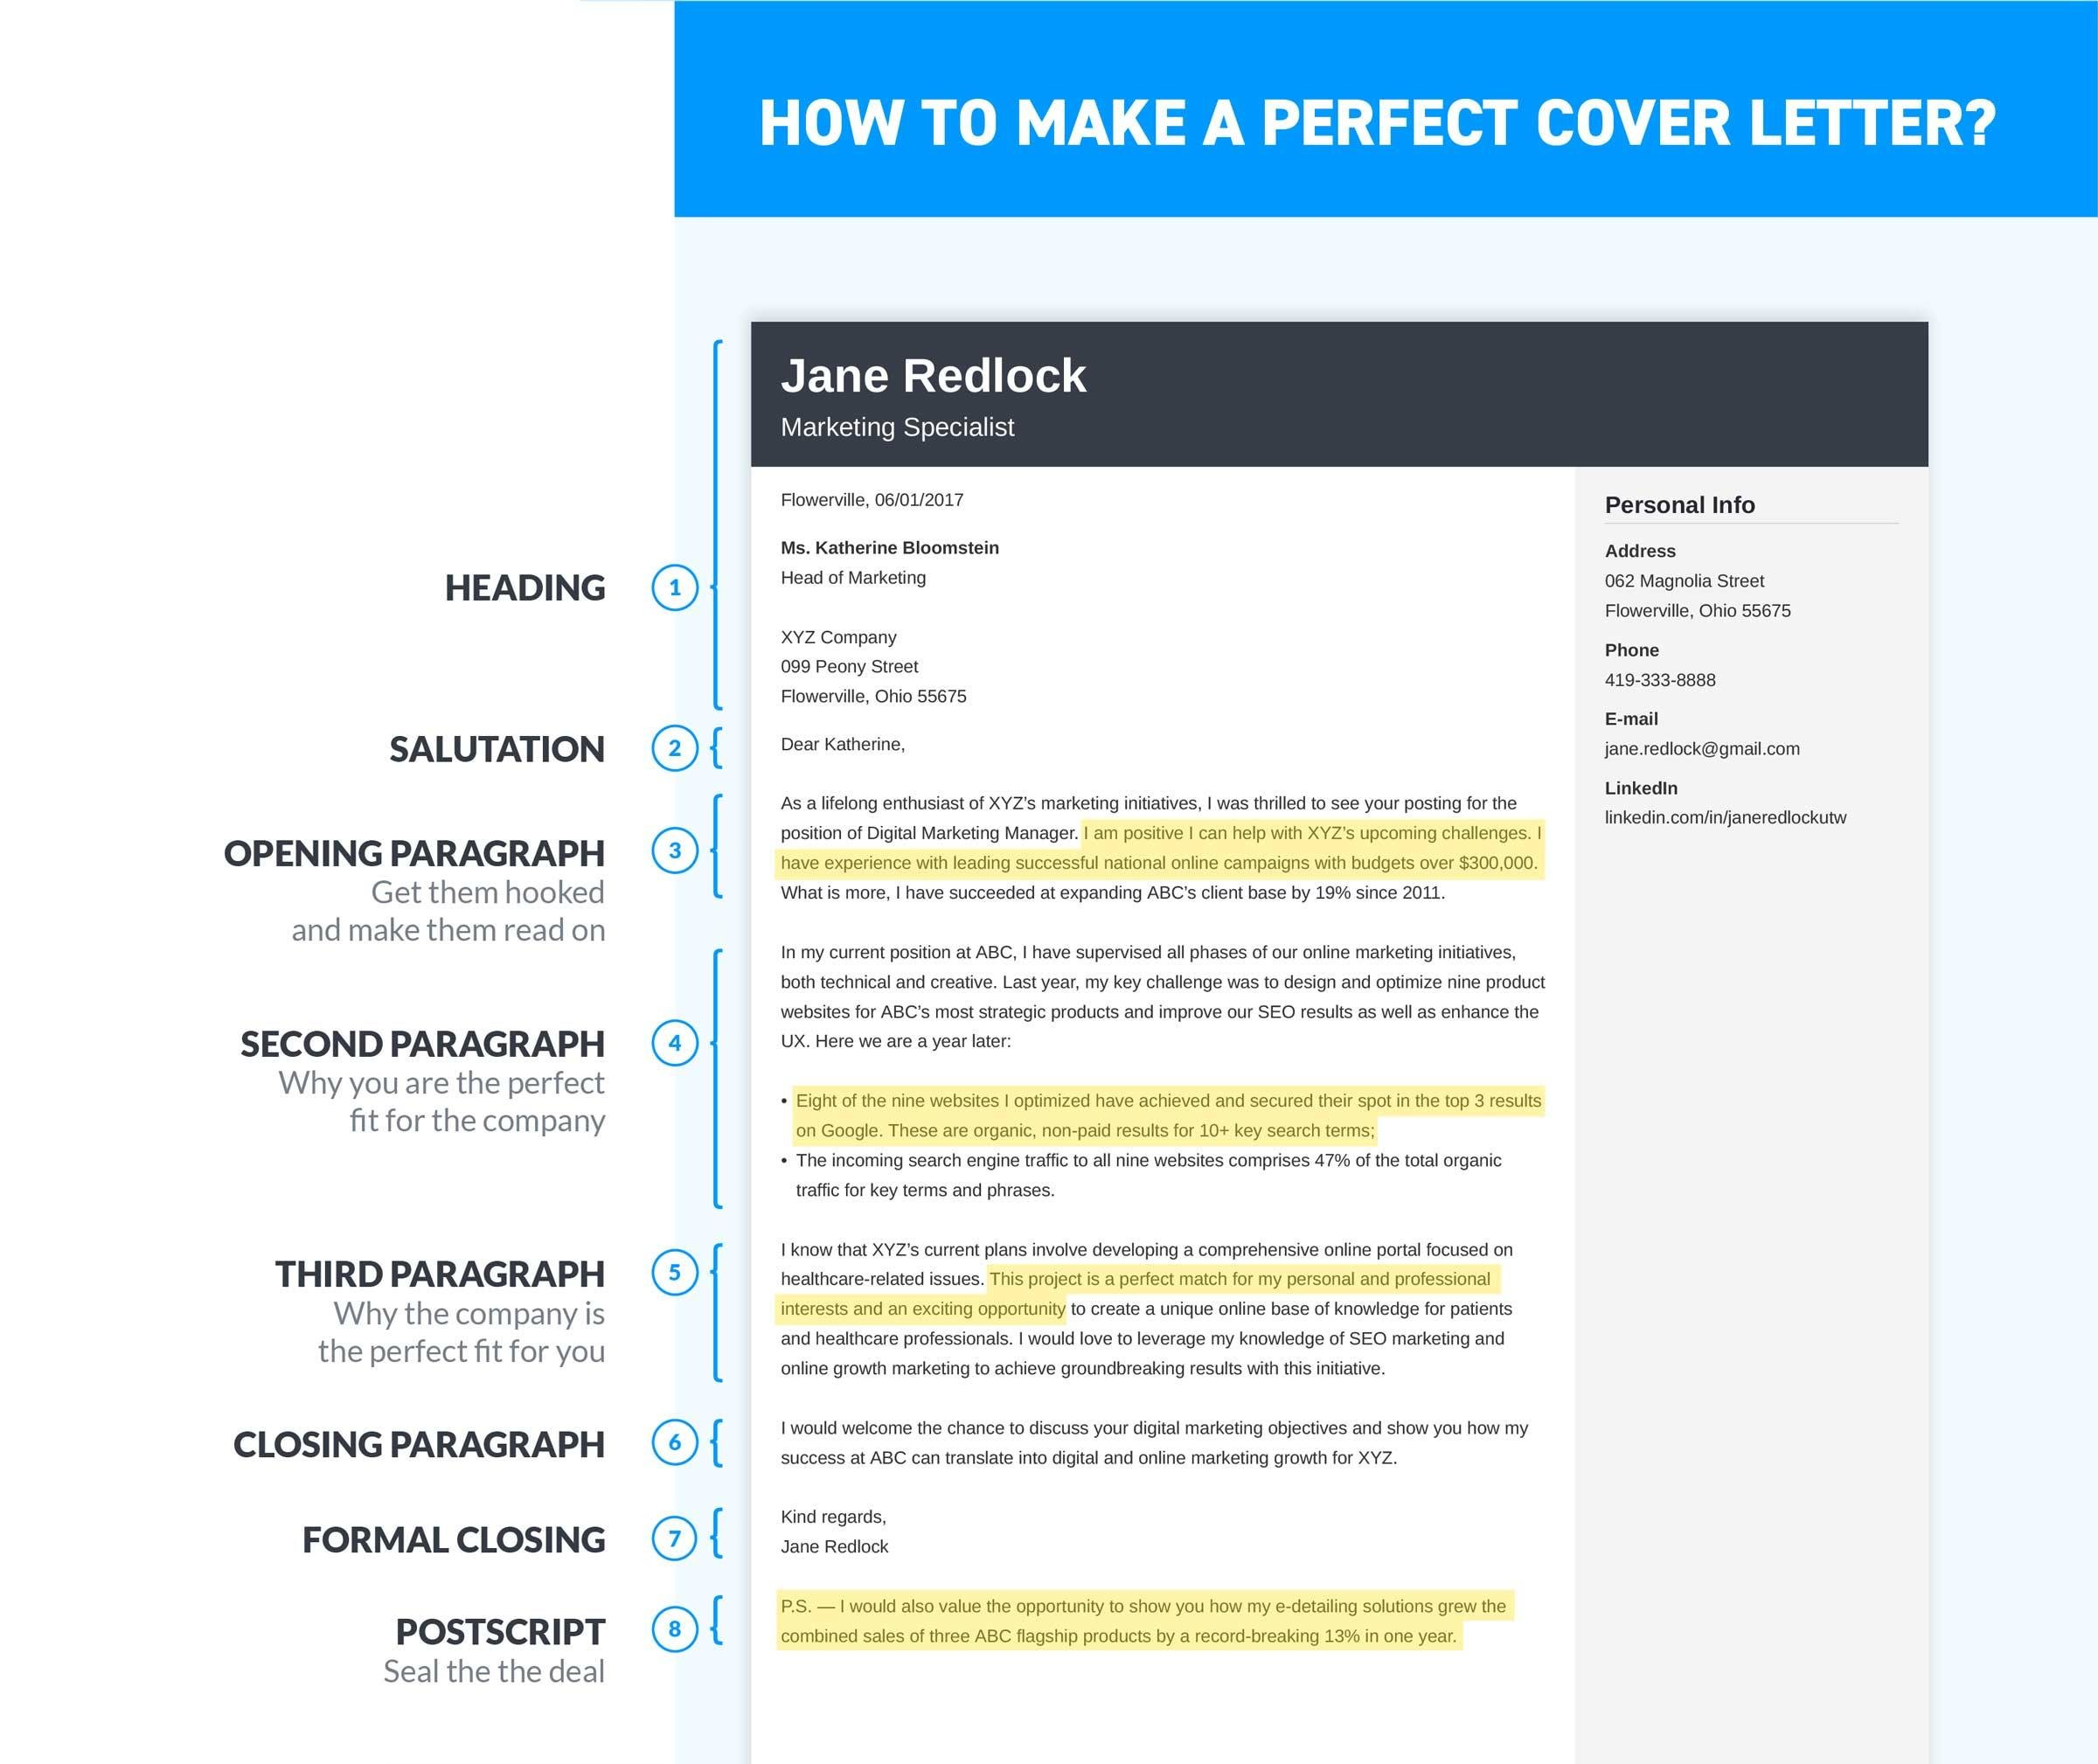 how to make a perfect cover letter infographic - Coverletter